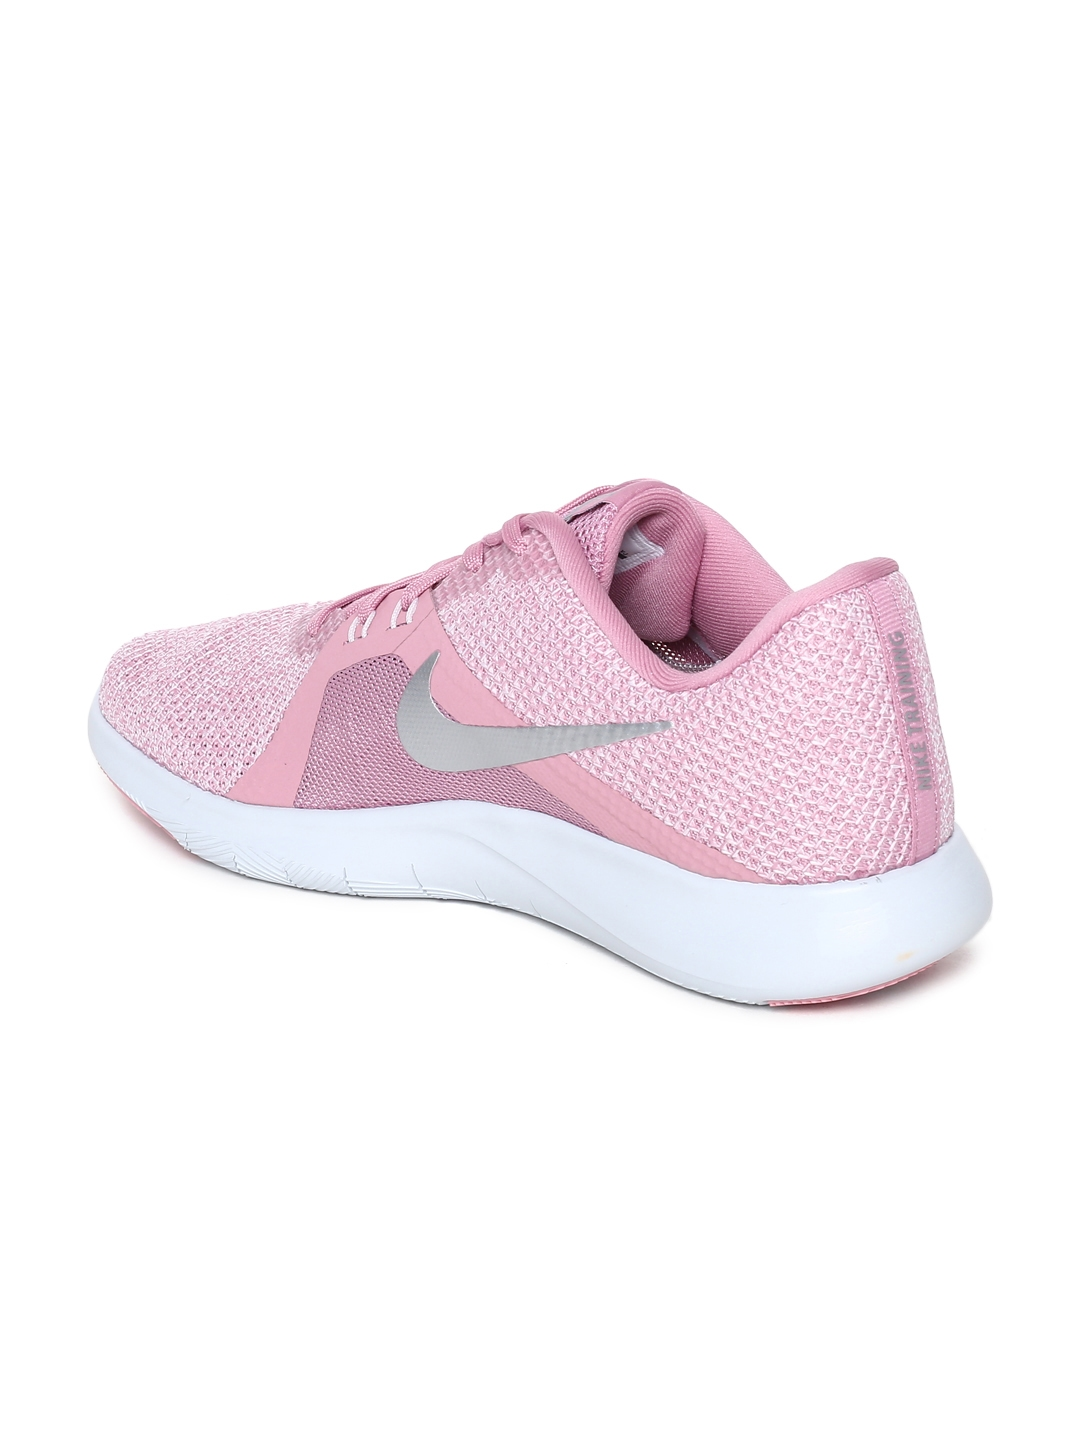 821cce8fde47b Buy Nike Women Pink NIKE FLEX TRAINER 8 Training Shoes - Sports ...